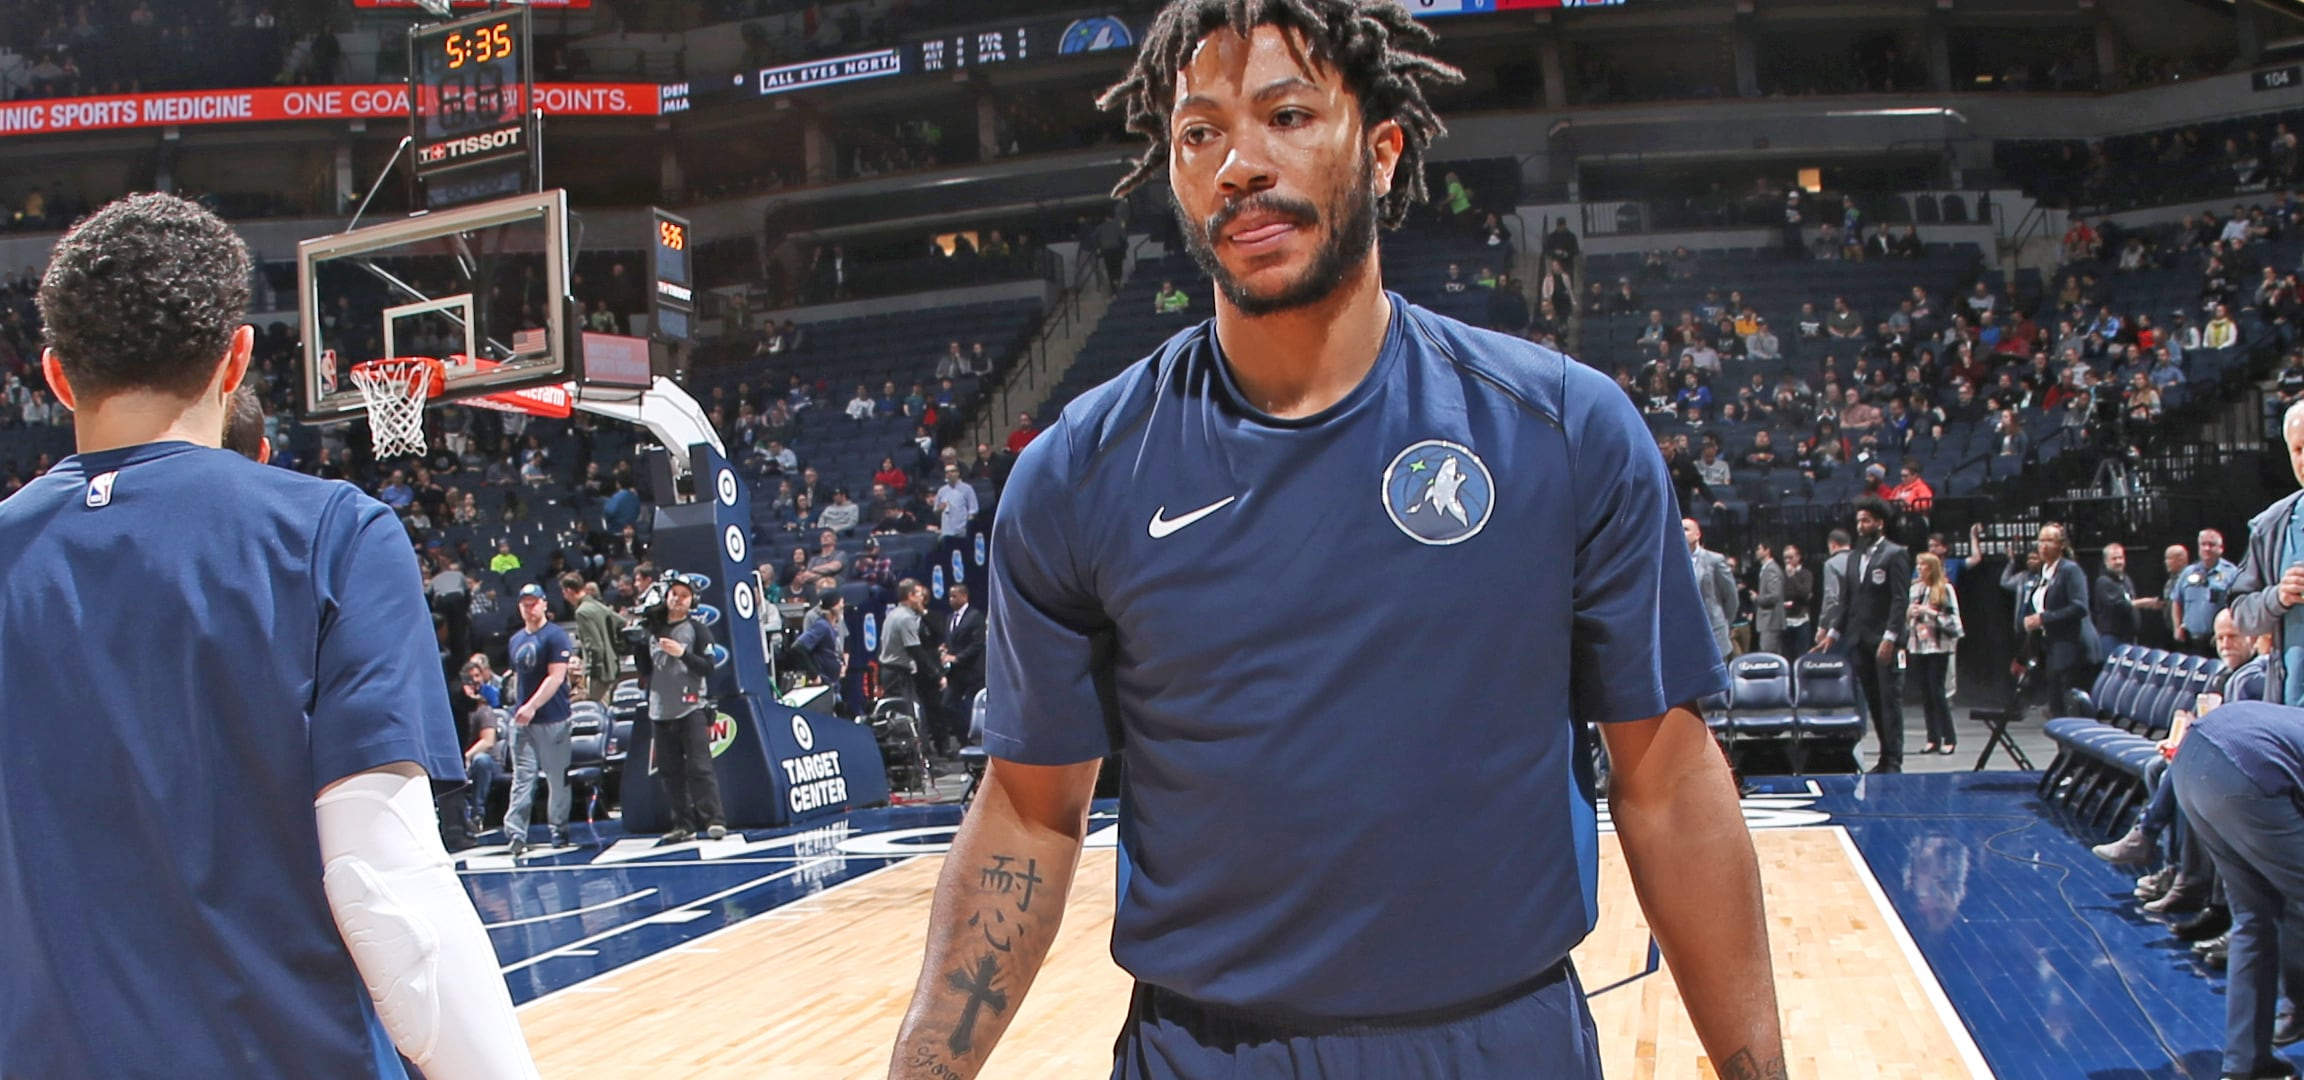 Derrick Rose Available To Play vs. Jazz | Minnesota ...